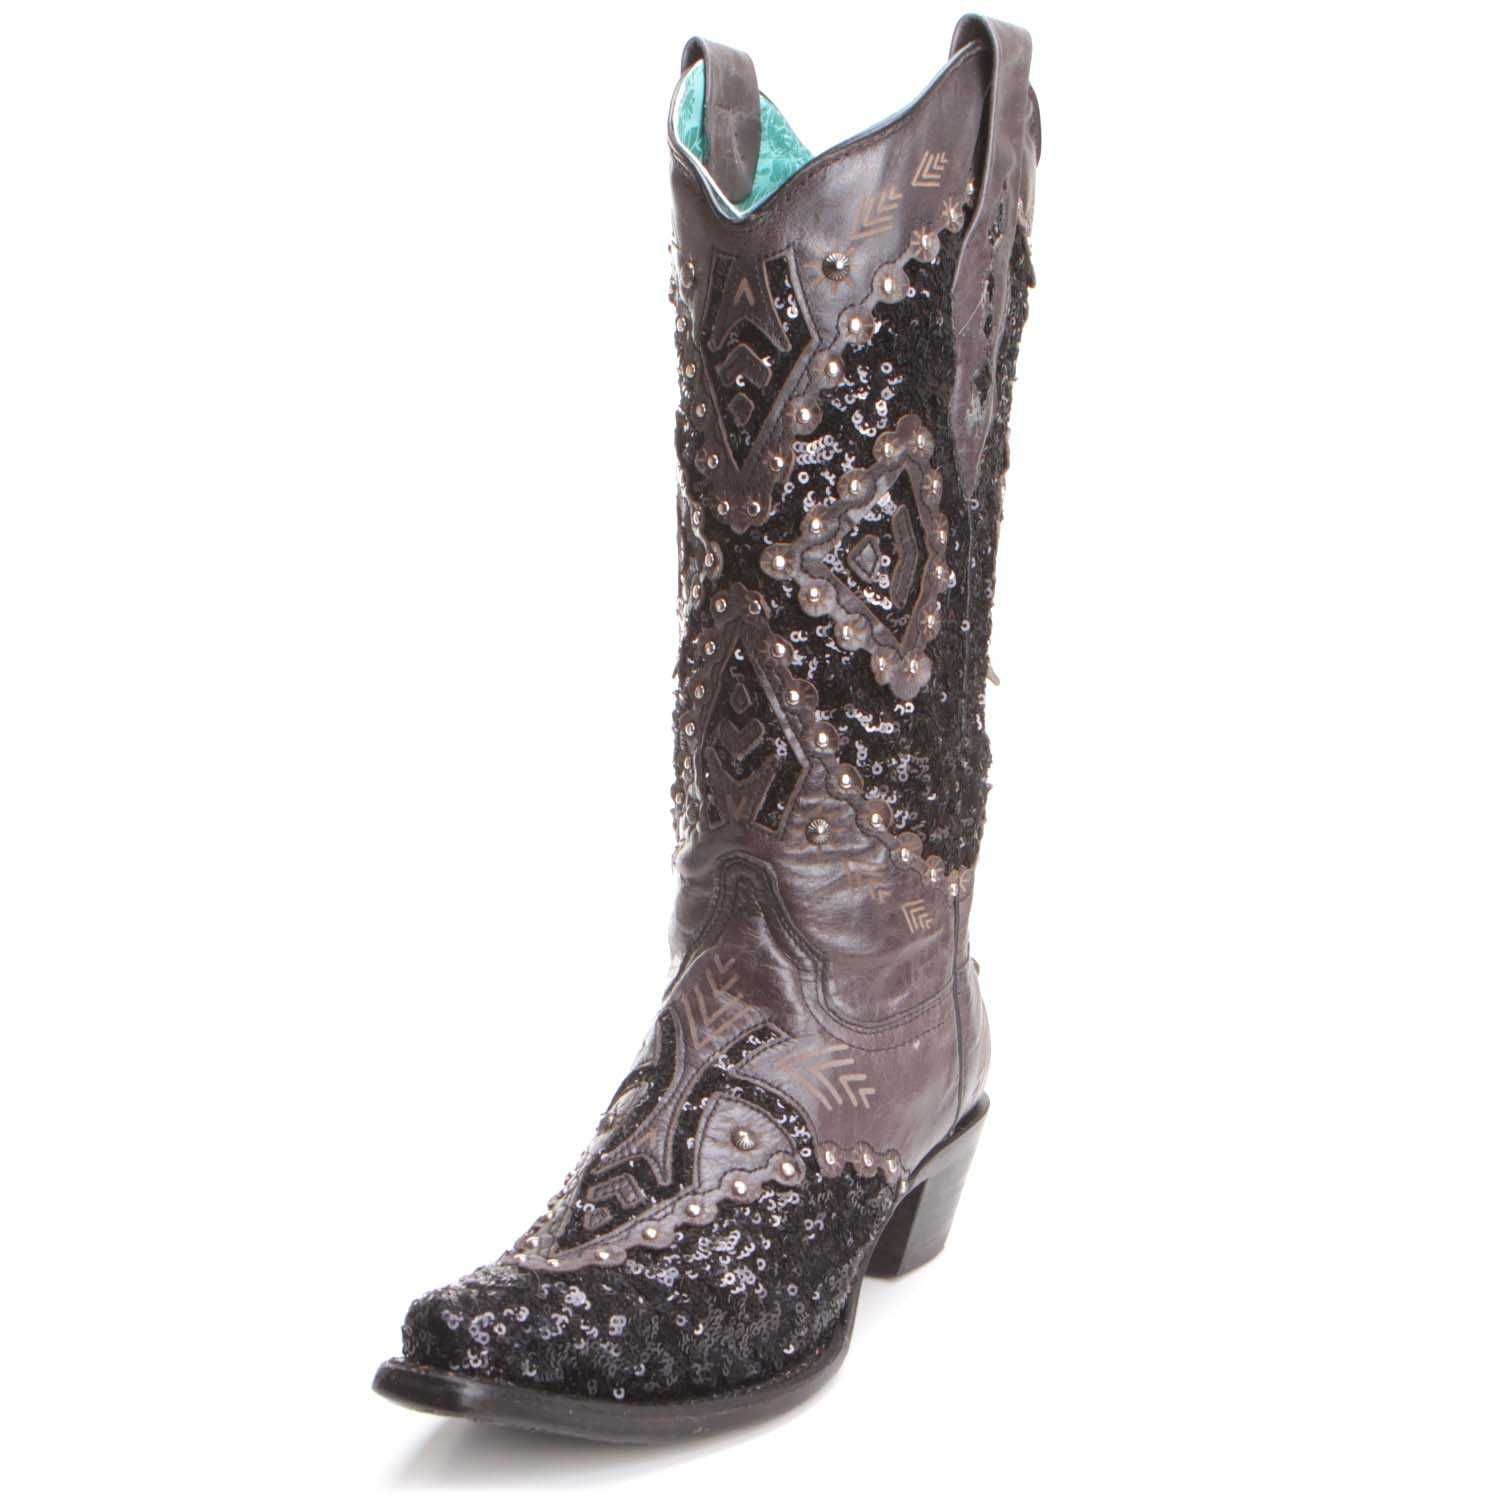 018f4acc274 Gorgeous Black Corral Women's Sequin Inlay Cowboy Boots are edgy ...